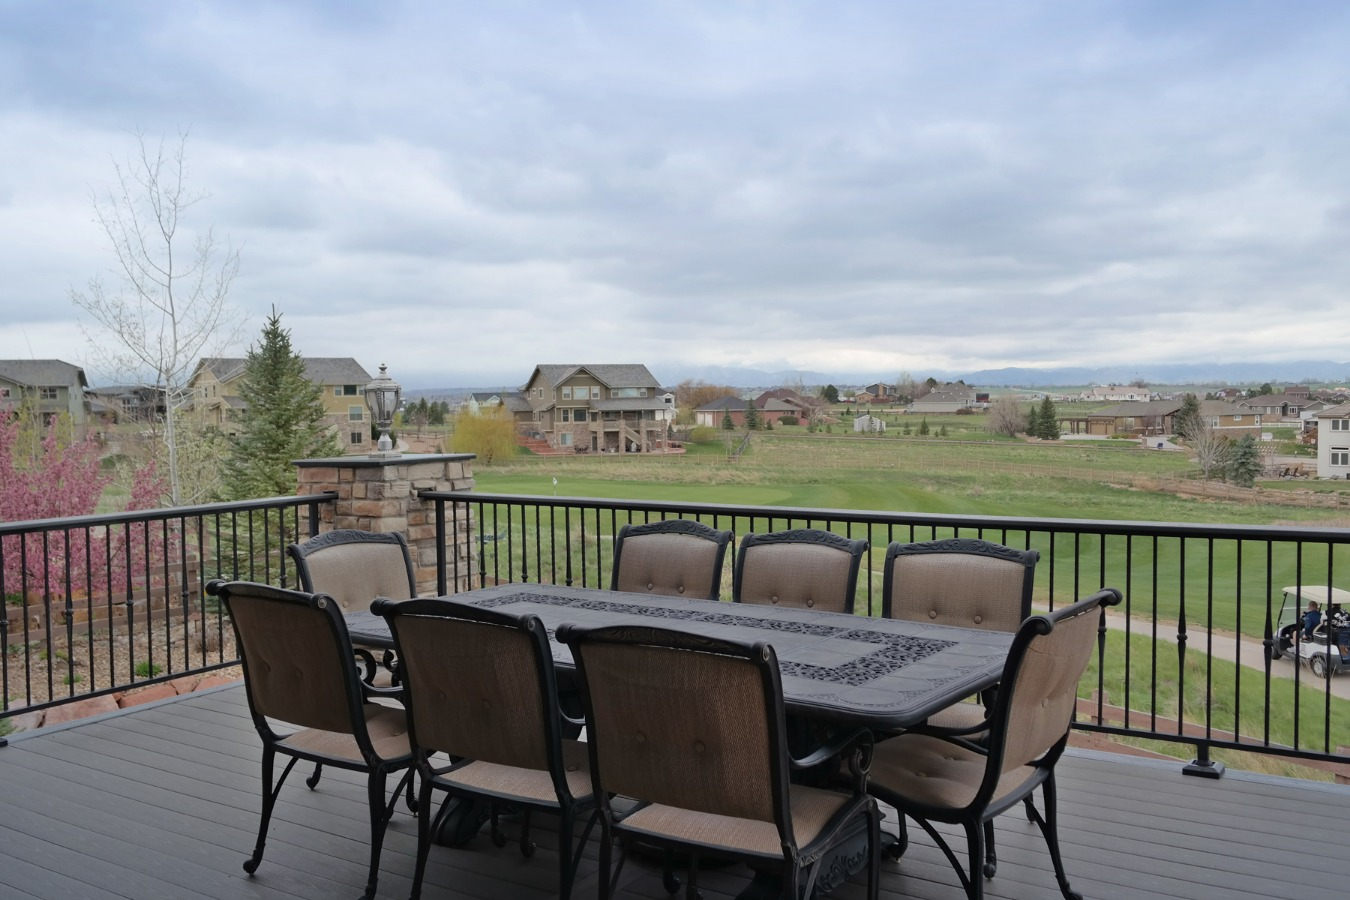 Upper Deck Perfect to Relax &/or Entertain